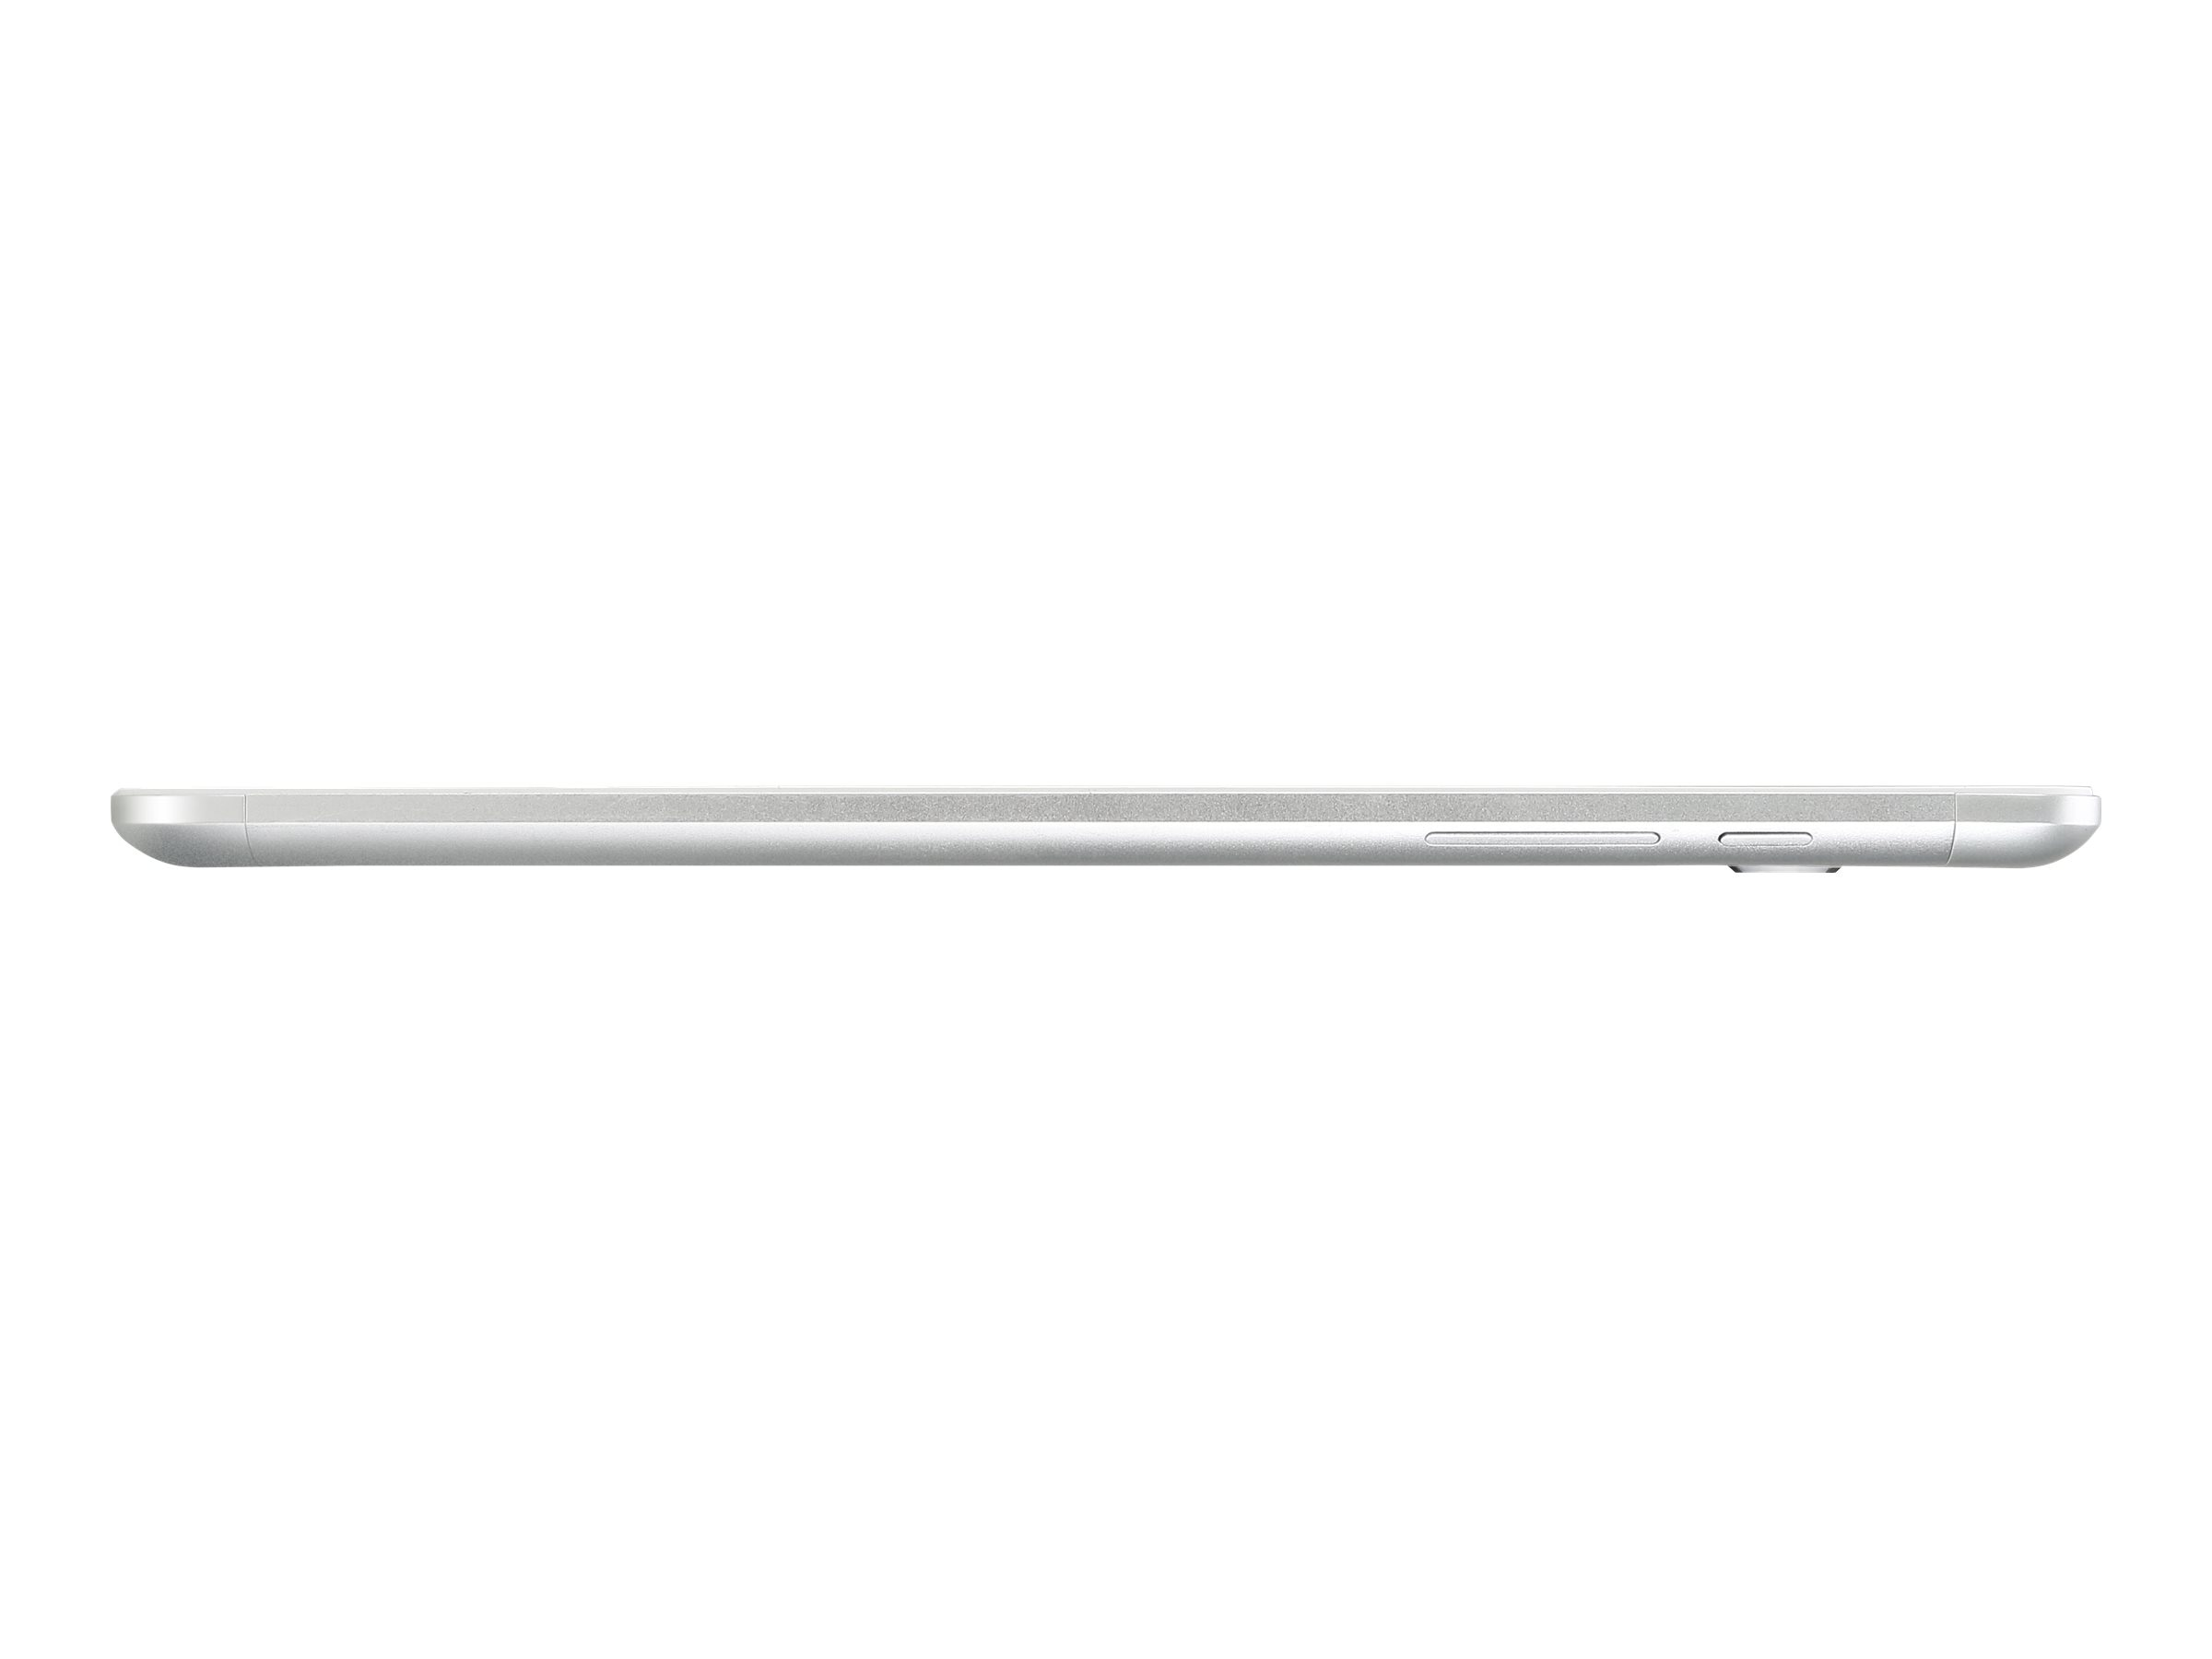 Acer NT.L4JAA.002 Image 14